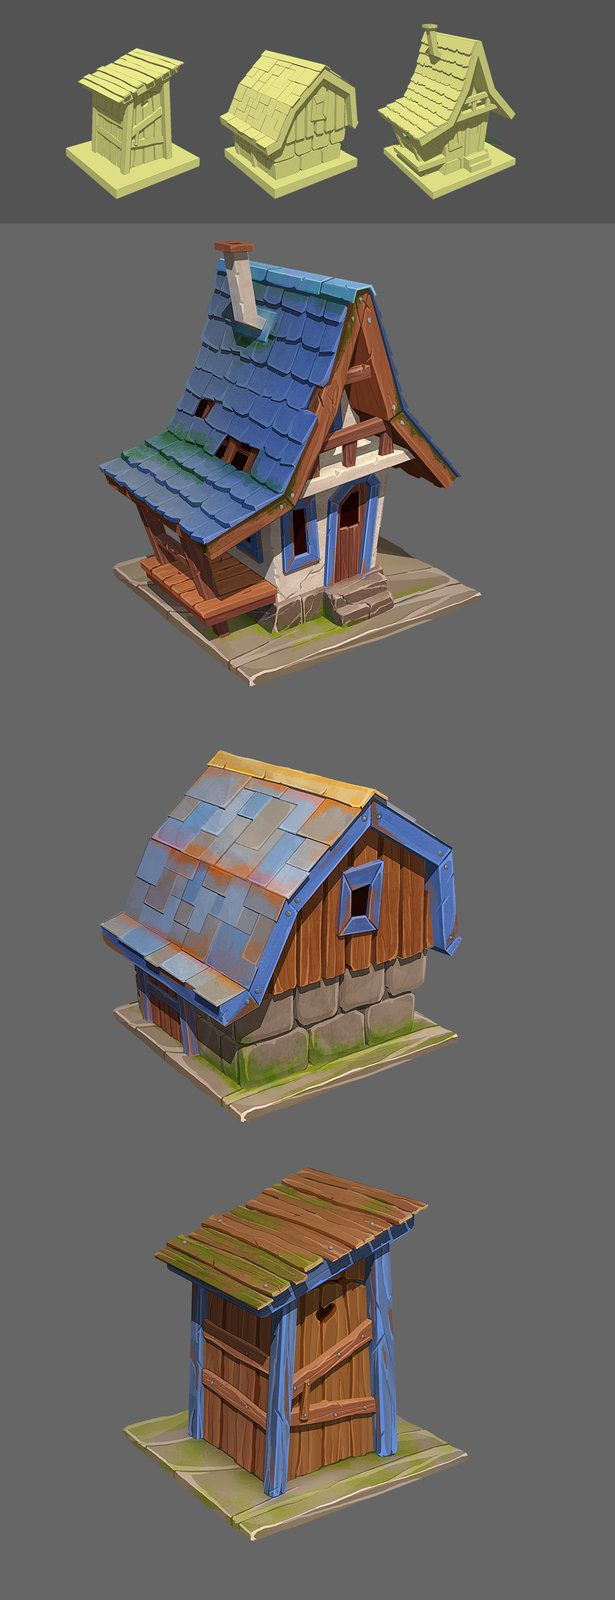 Houses_game_art, Yana Blyzniuk on ArtStation at https://www.artstation.com/artwork/houses_game_art